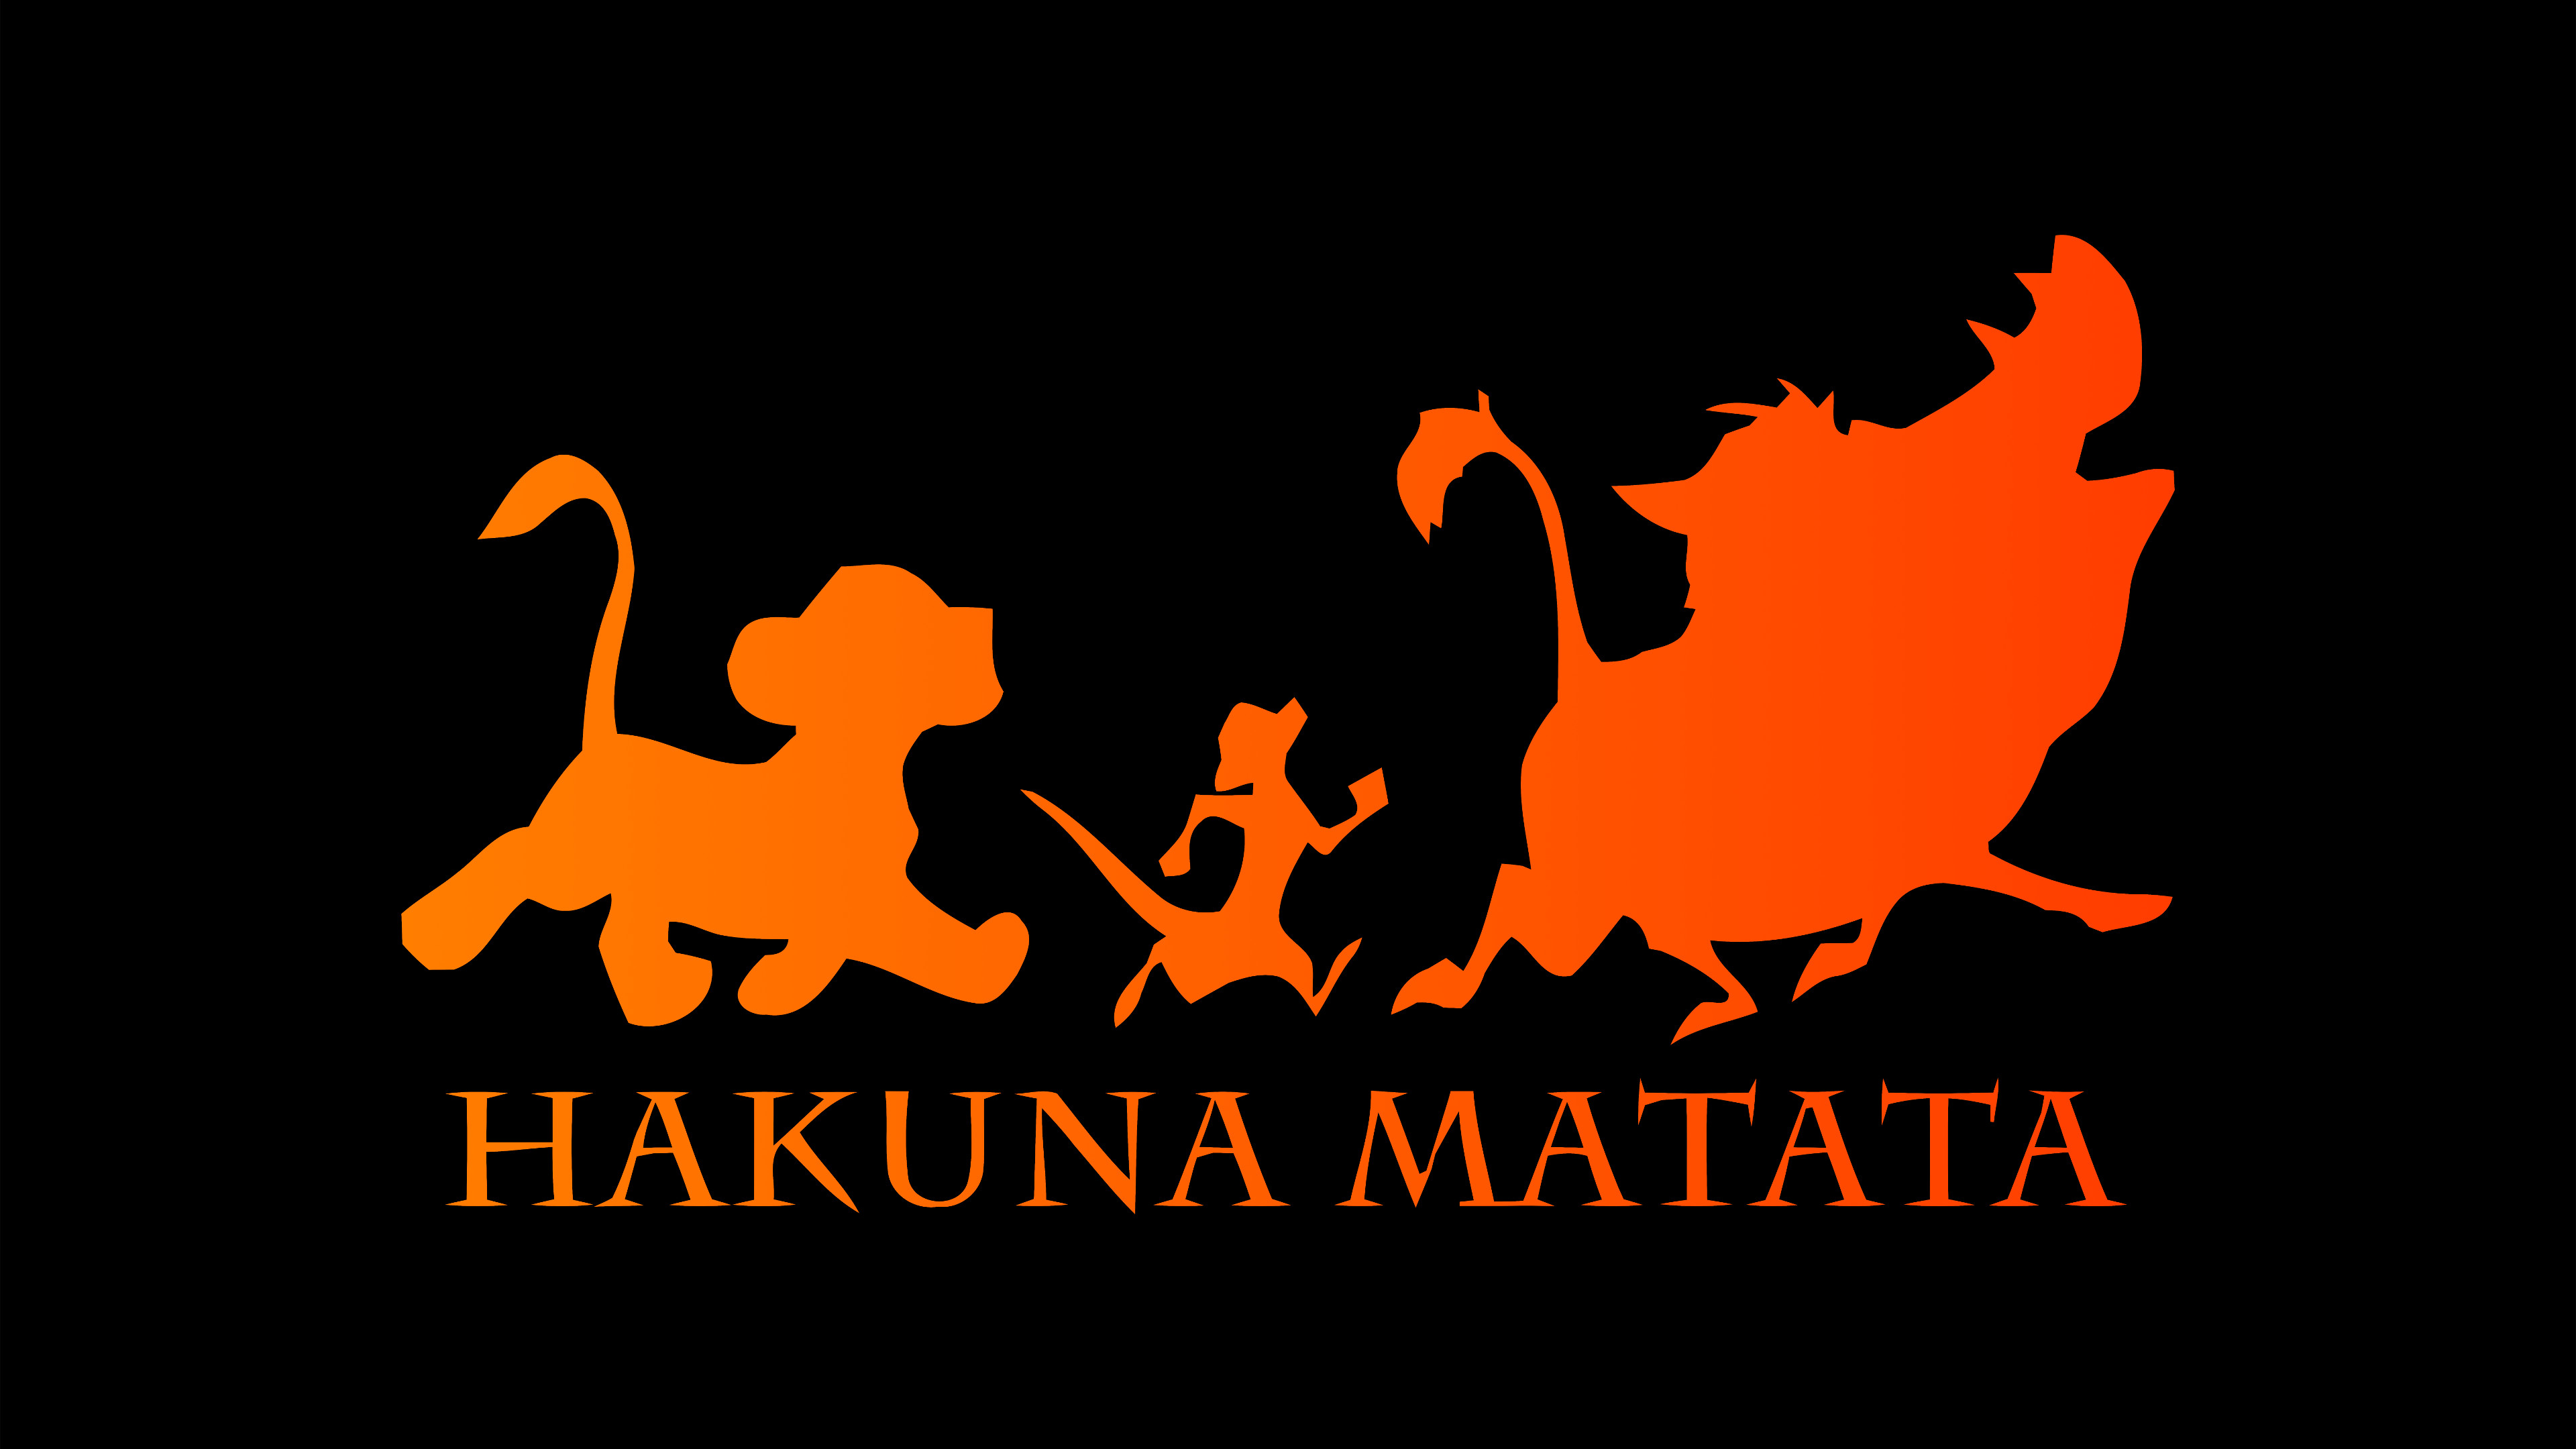 List Of Synonyms And Antonyms Of The Word Hakuna Matata